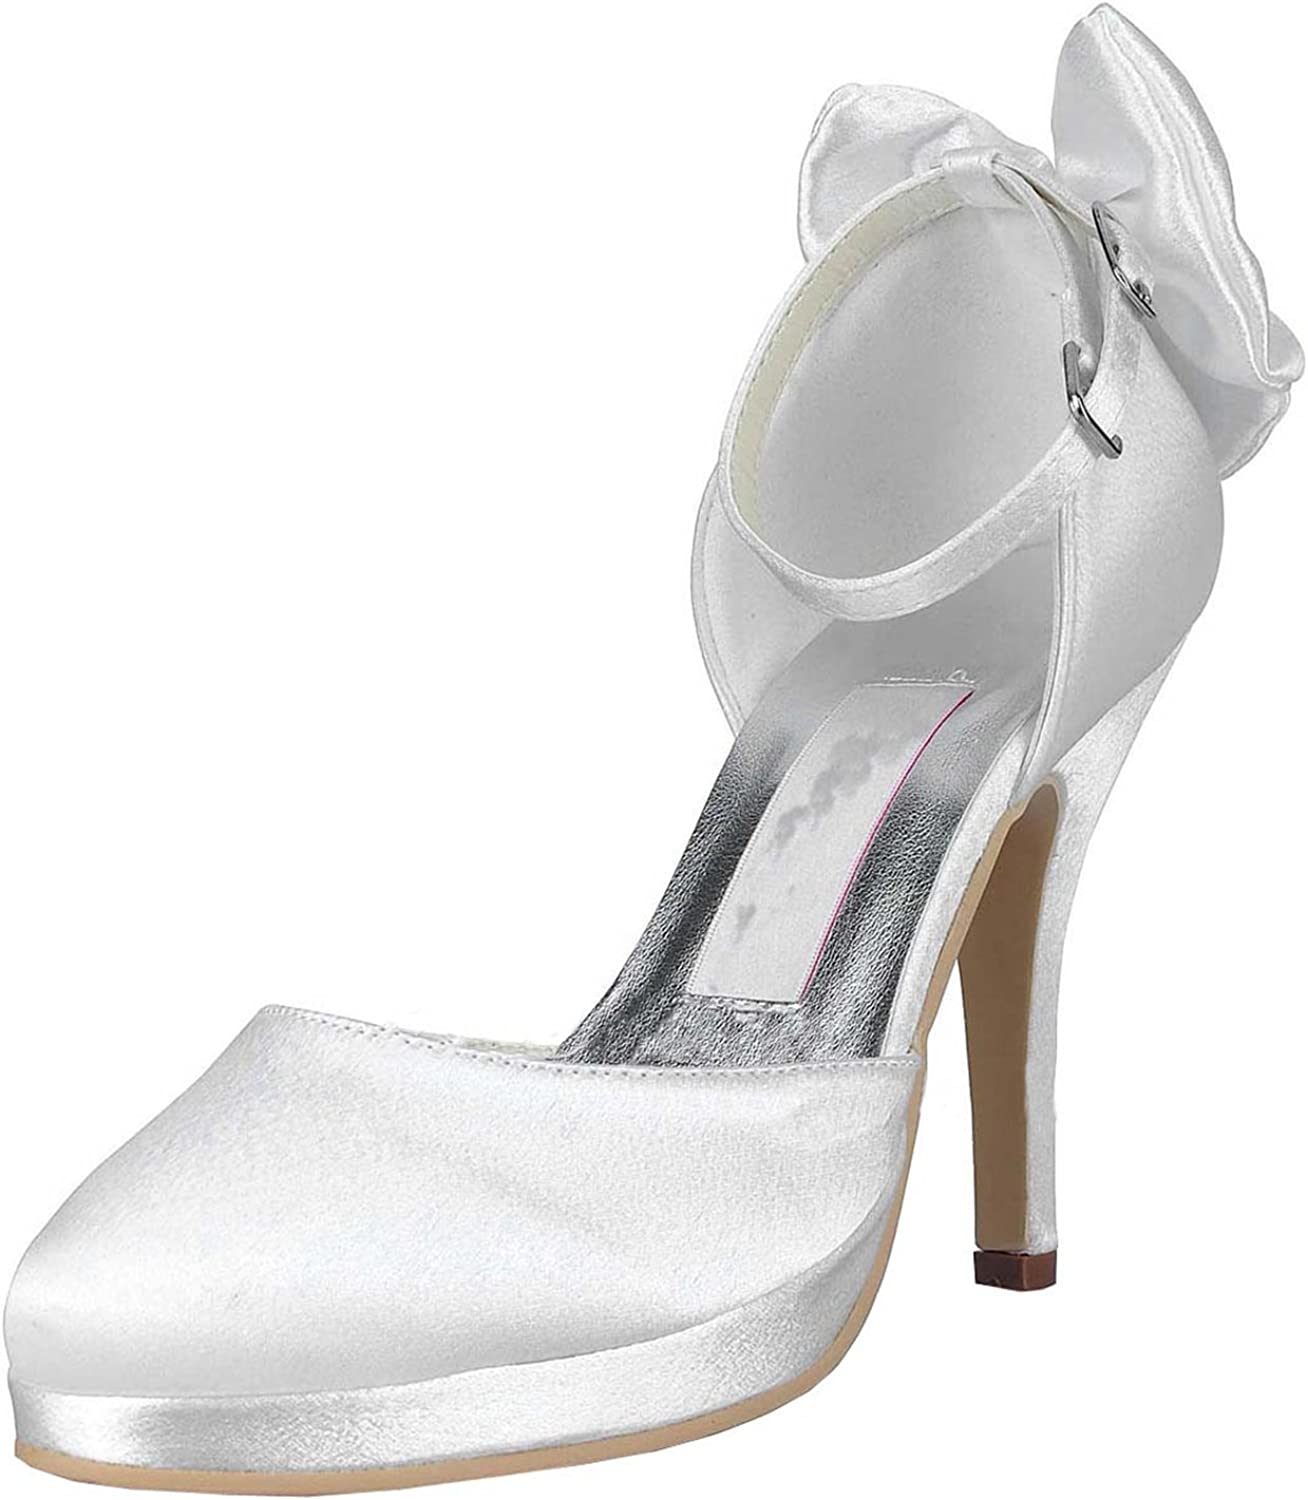 Minitoo Womens MZ546 Round Toe Ankle Strap Satin Wedding Party Evening Prom Pumps shoes